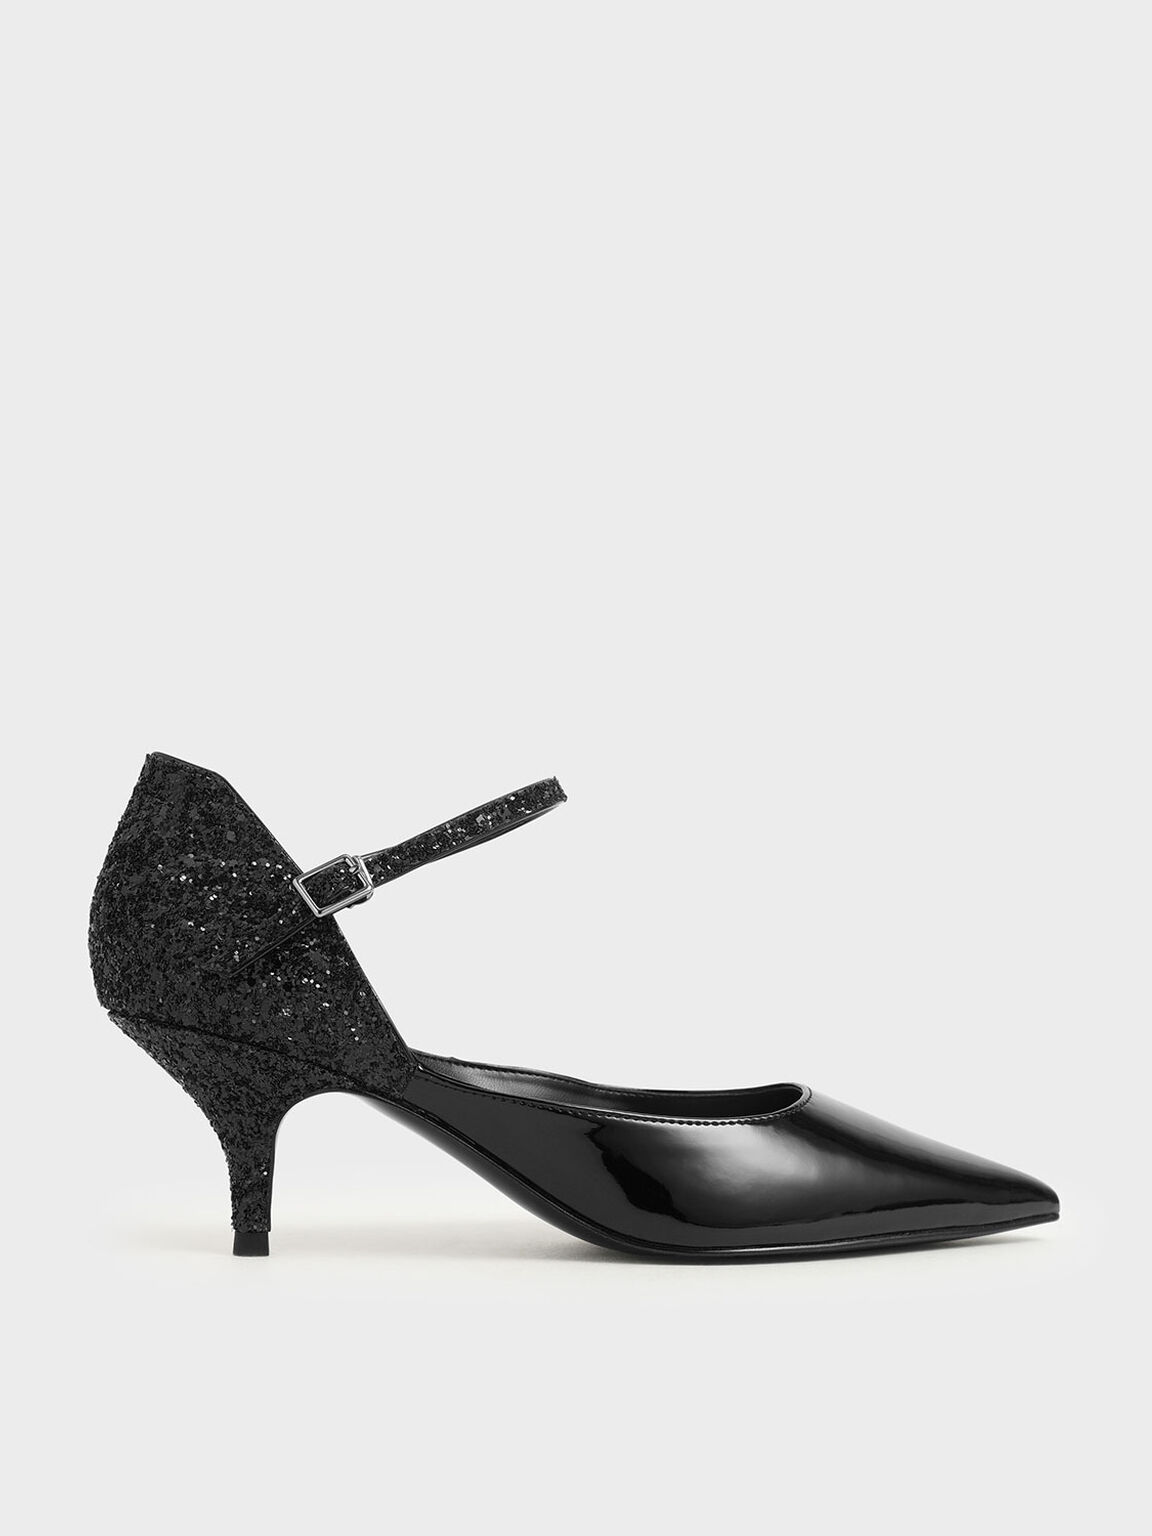 Patent Glitter Kitten Heel Pumps, Black, hi-res